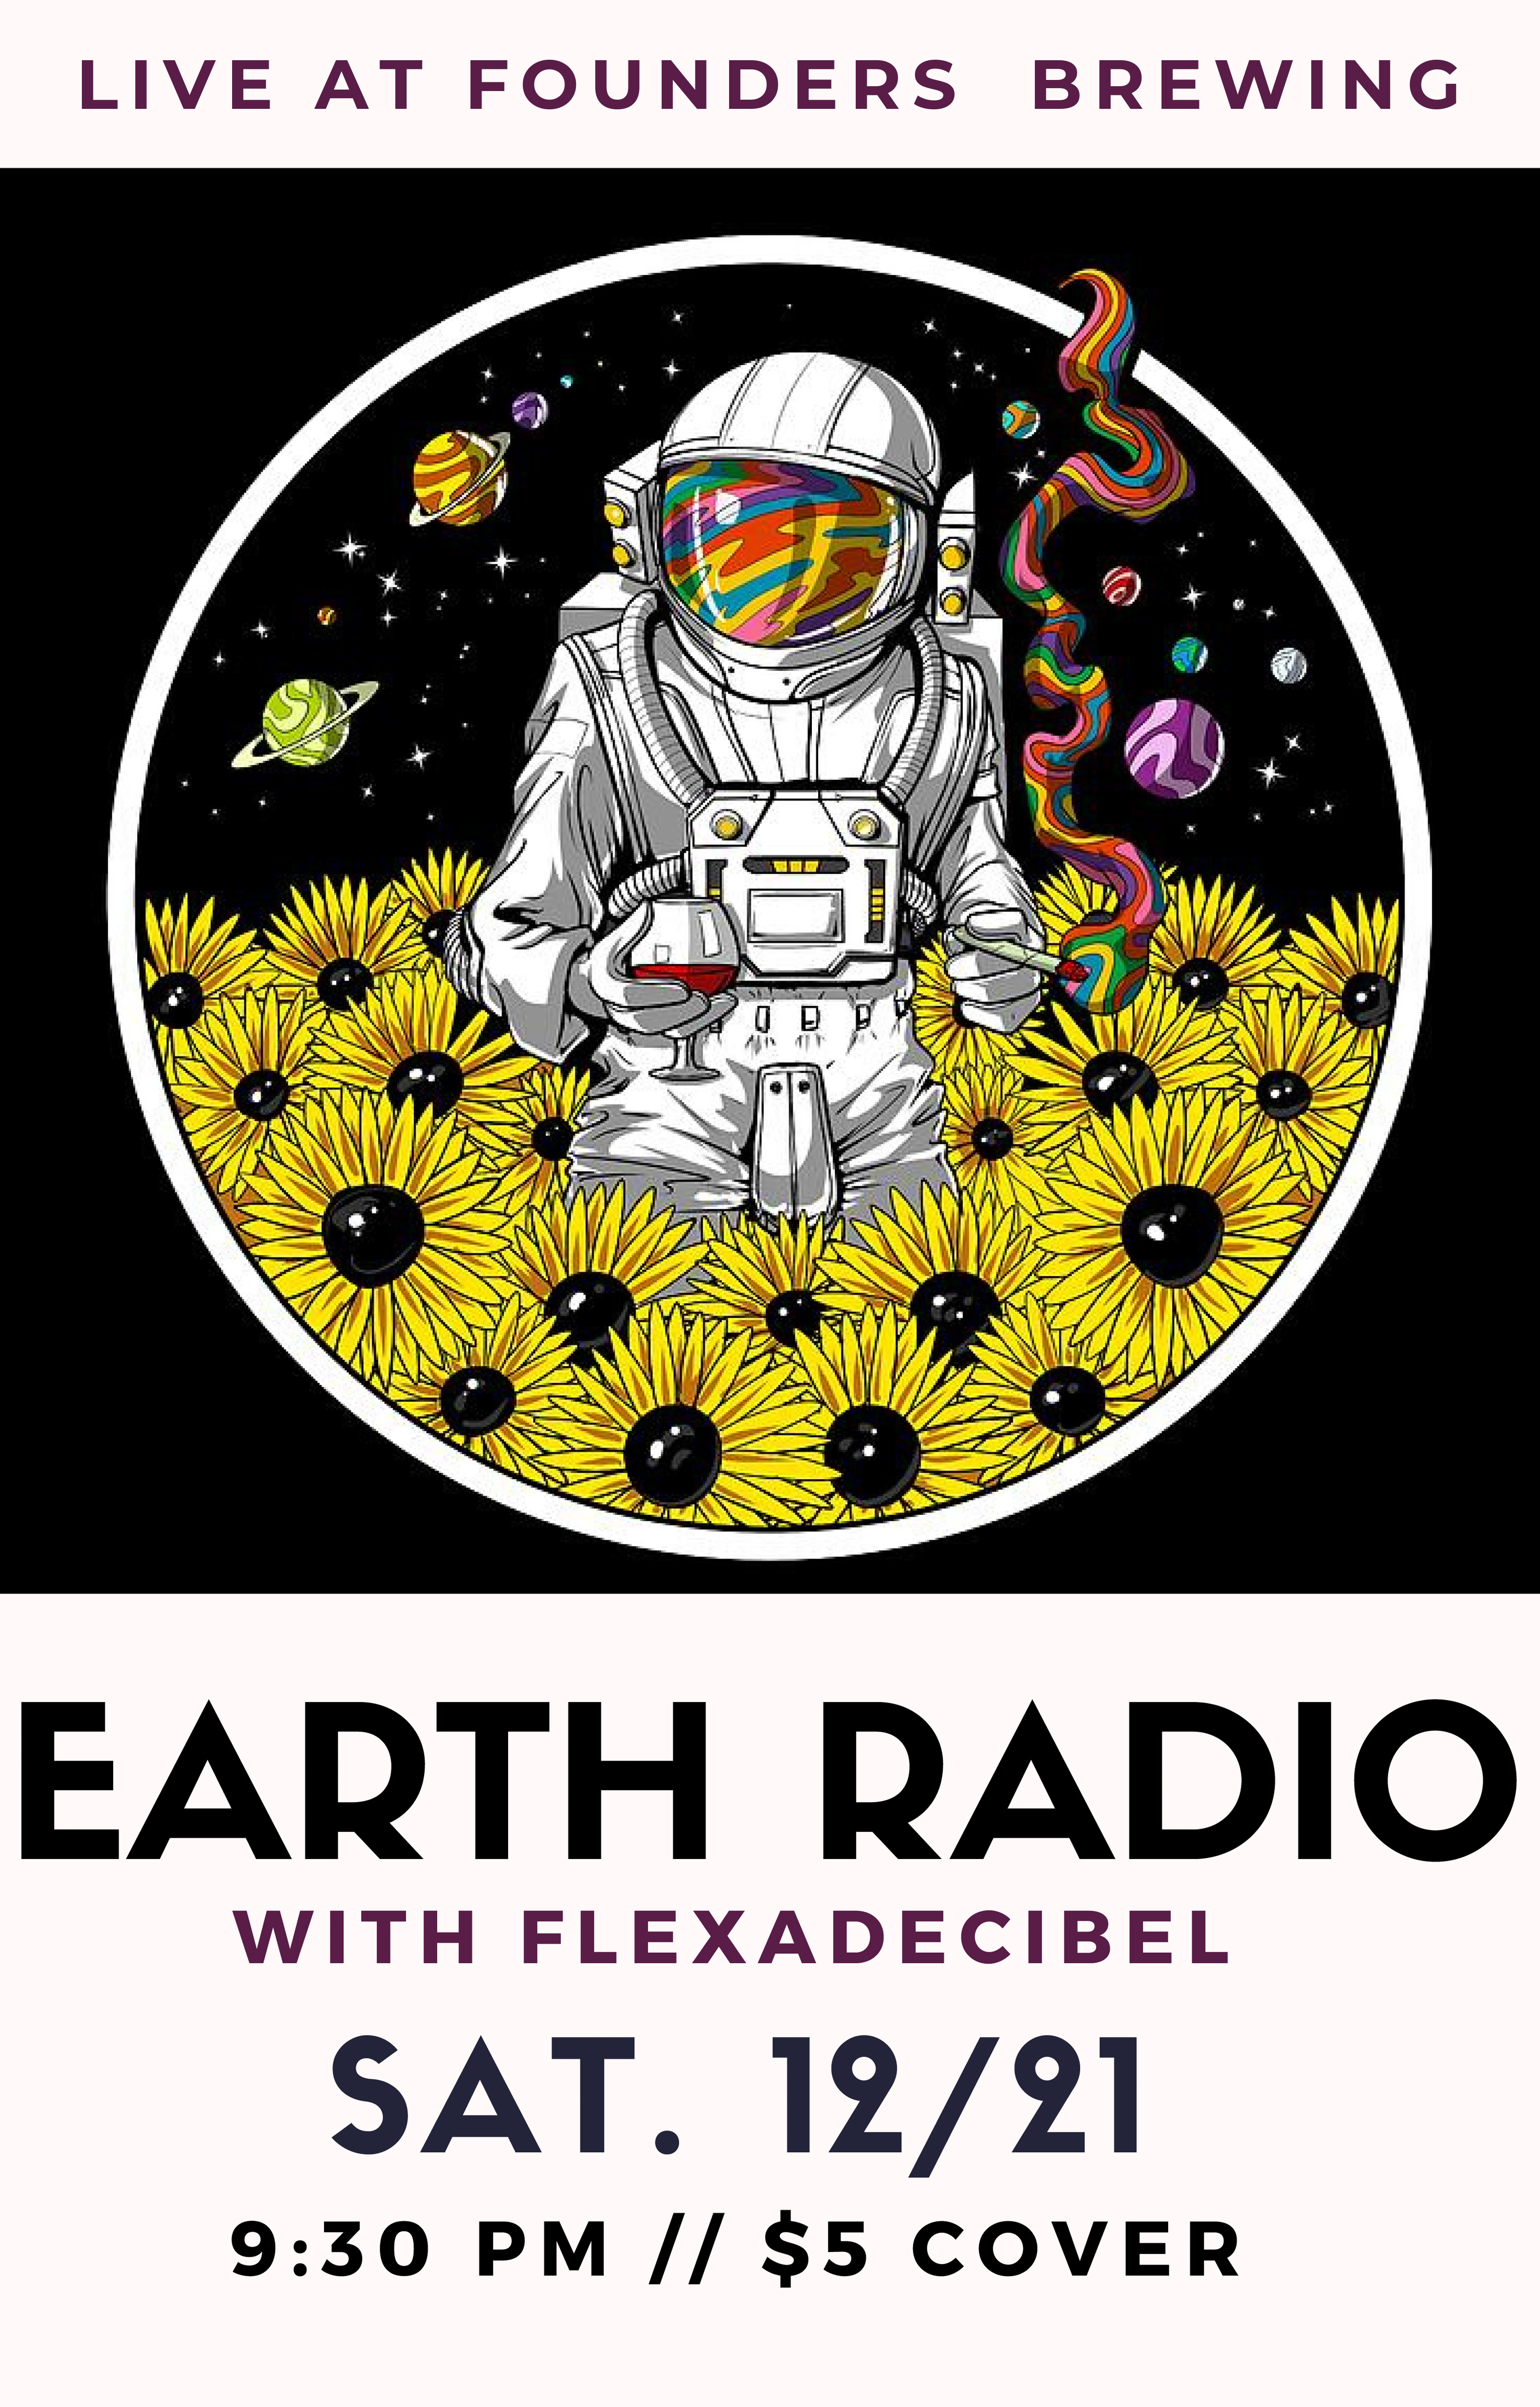 Earth Radio with Flexadecibel event poster hosted by Founders Brewing Co.